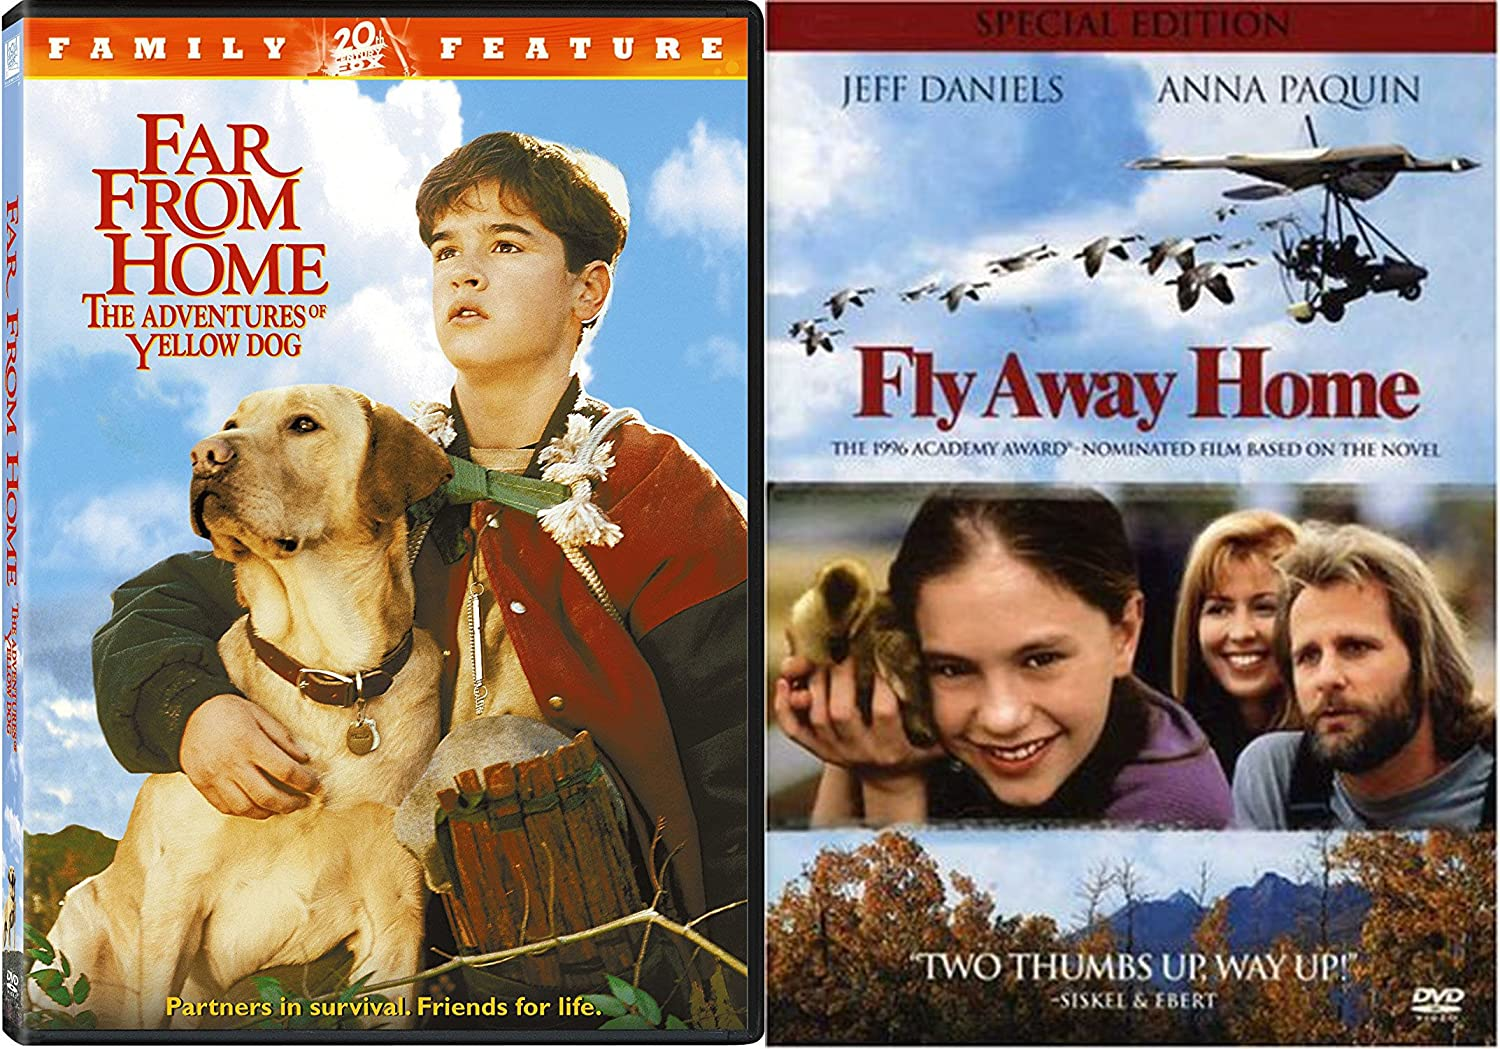 Homeward Bound Animal Adventure Bundle - Far From Home: The Adventures of Yellow Dog & Fly Away Home 2-DVD Collection